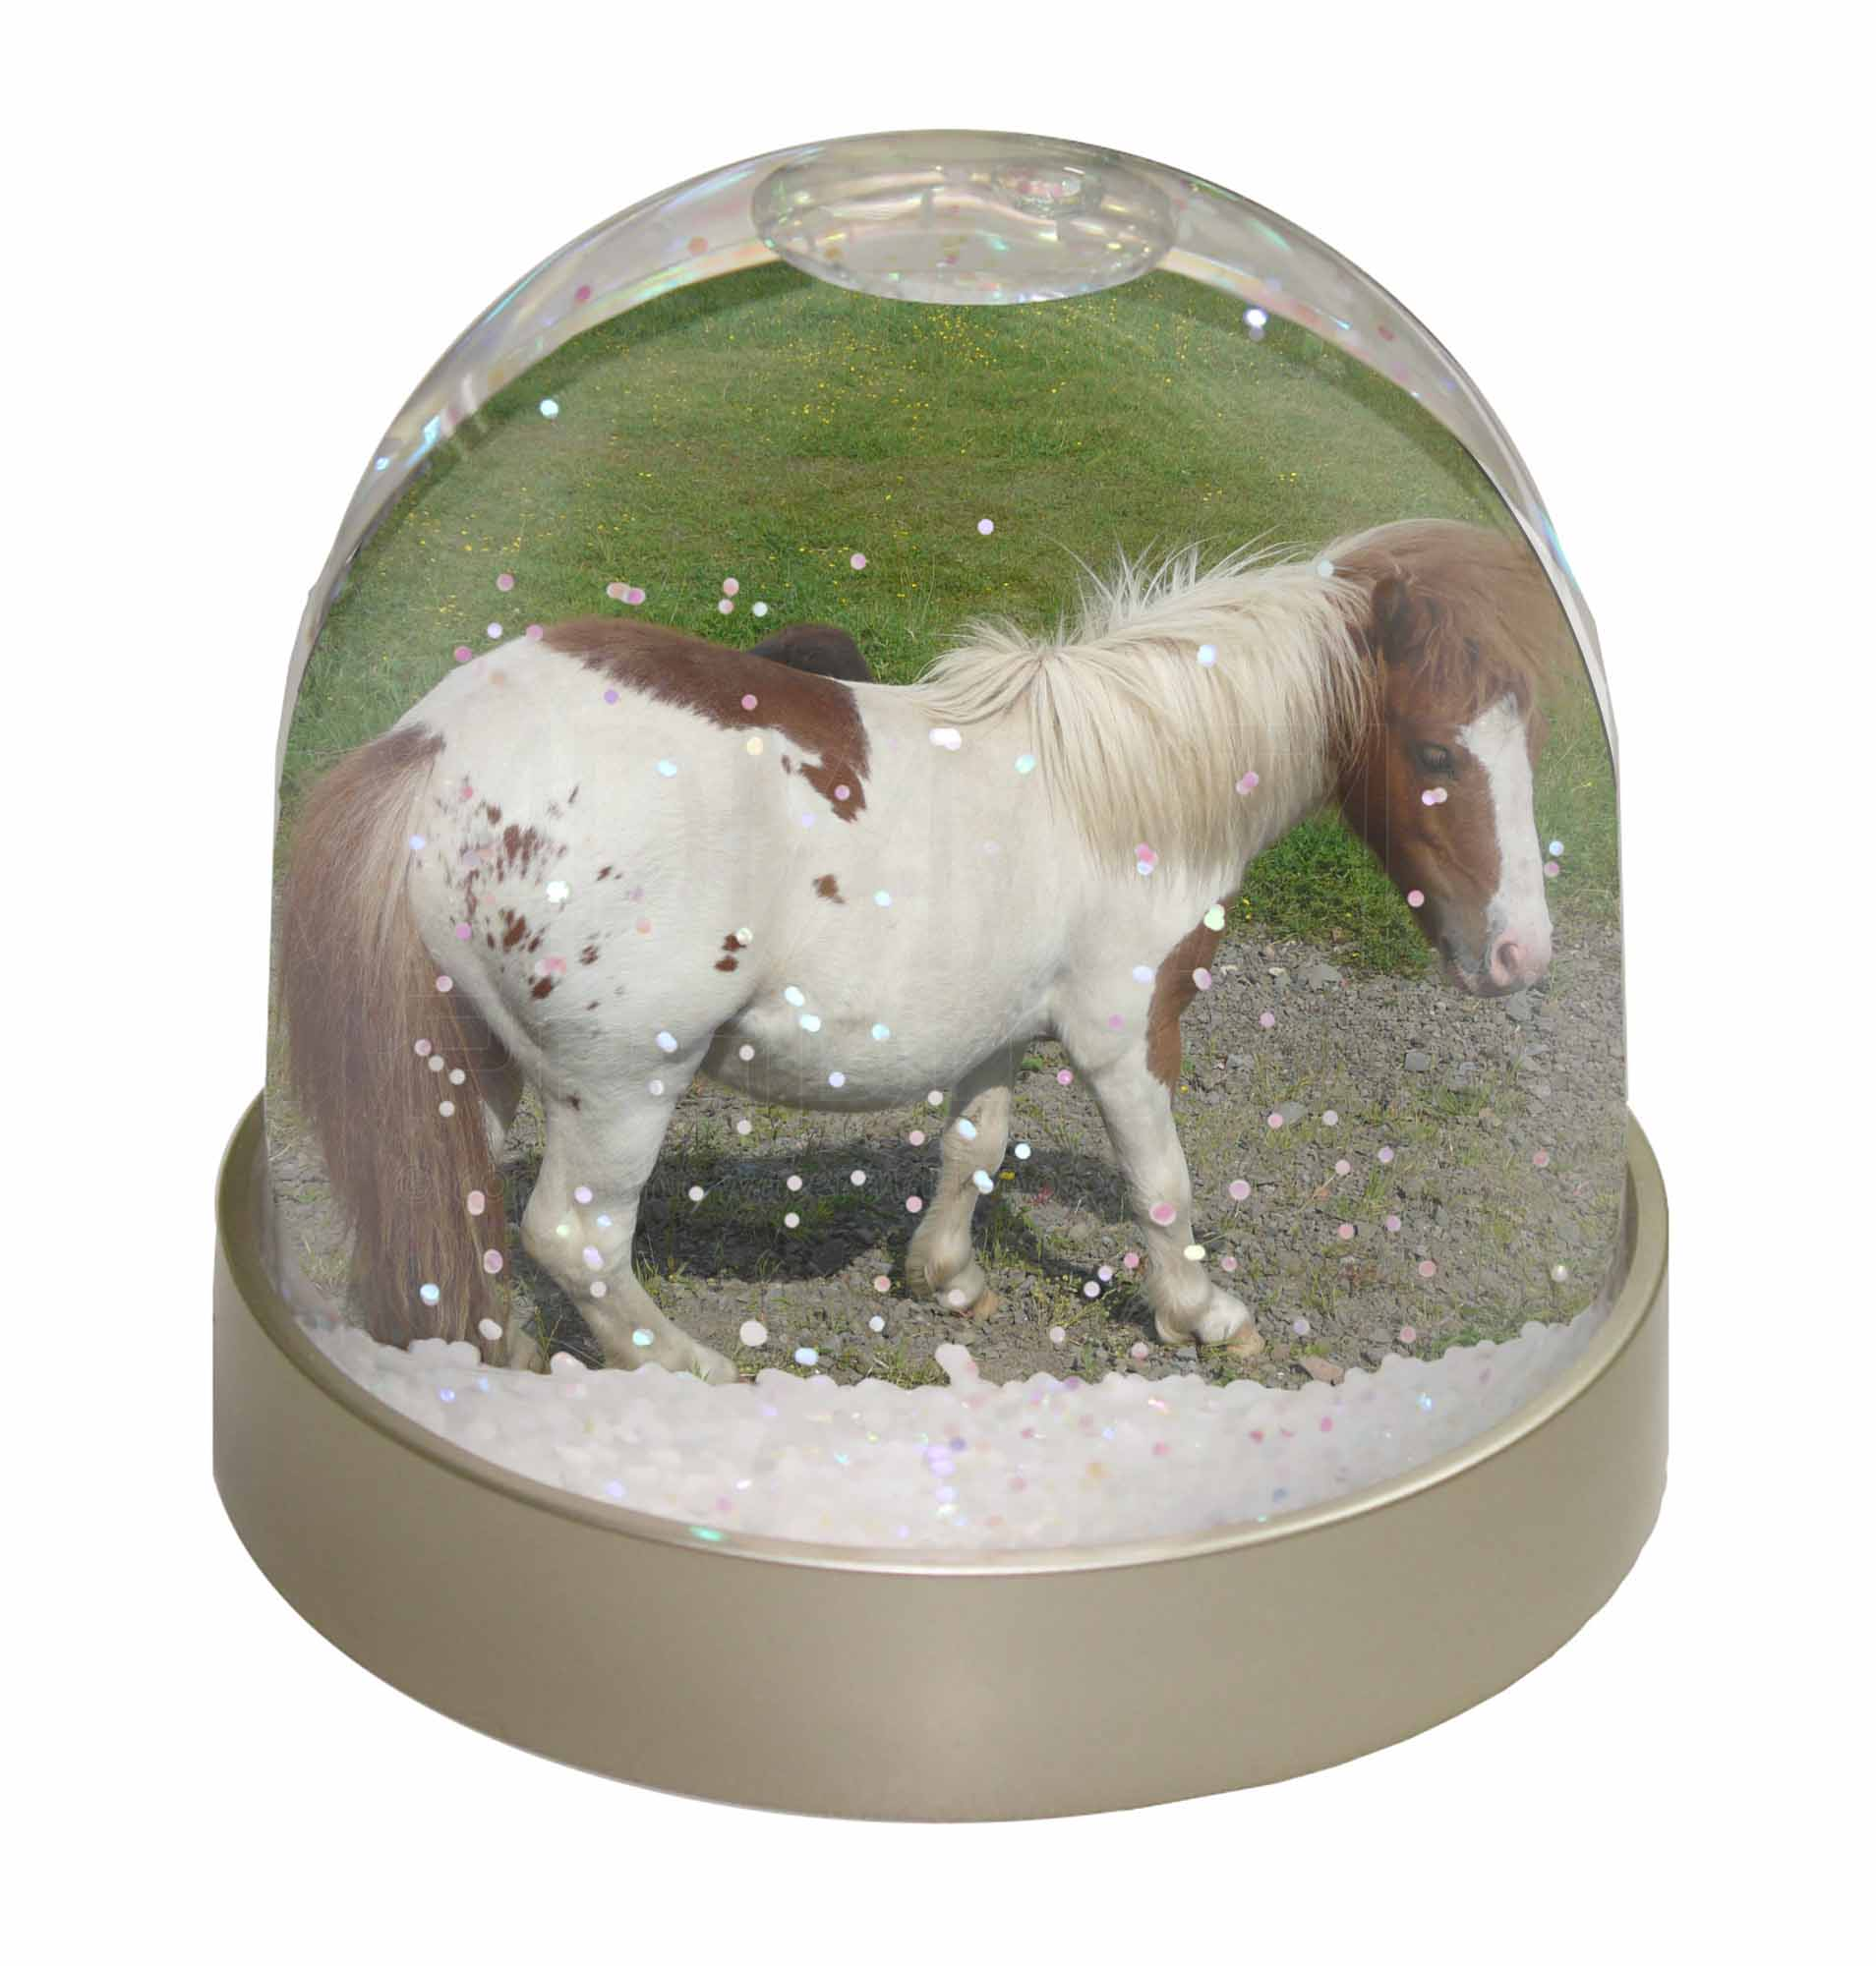 Details about Shetland Pony Photo Snow Globe Waterball Stocking Filler  Gift, AHC-3GL